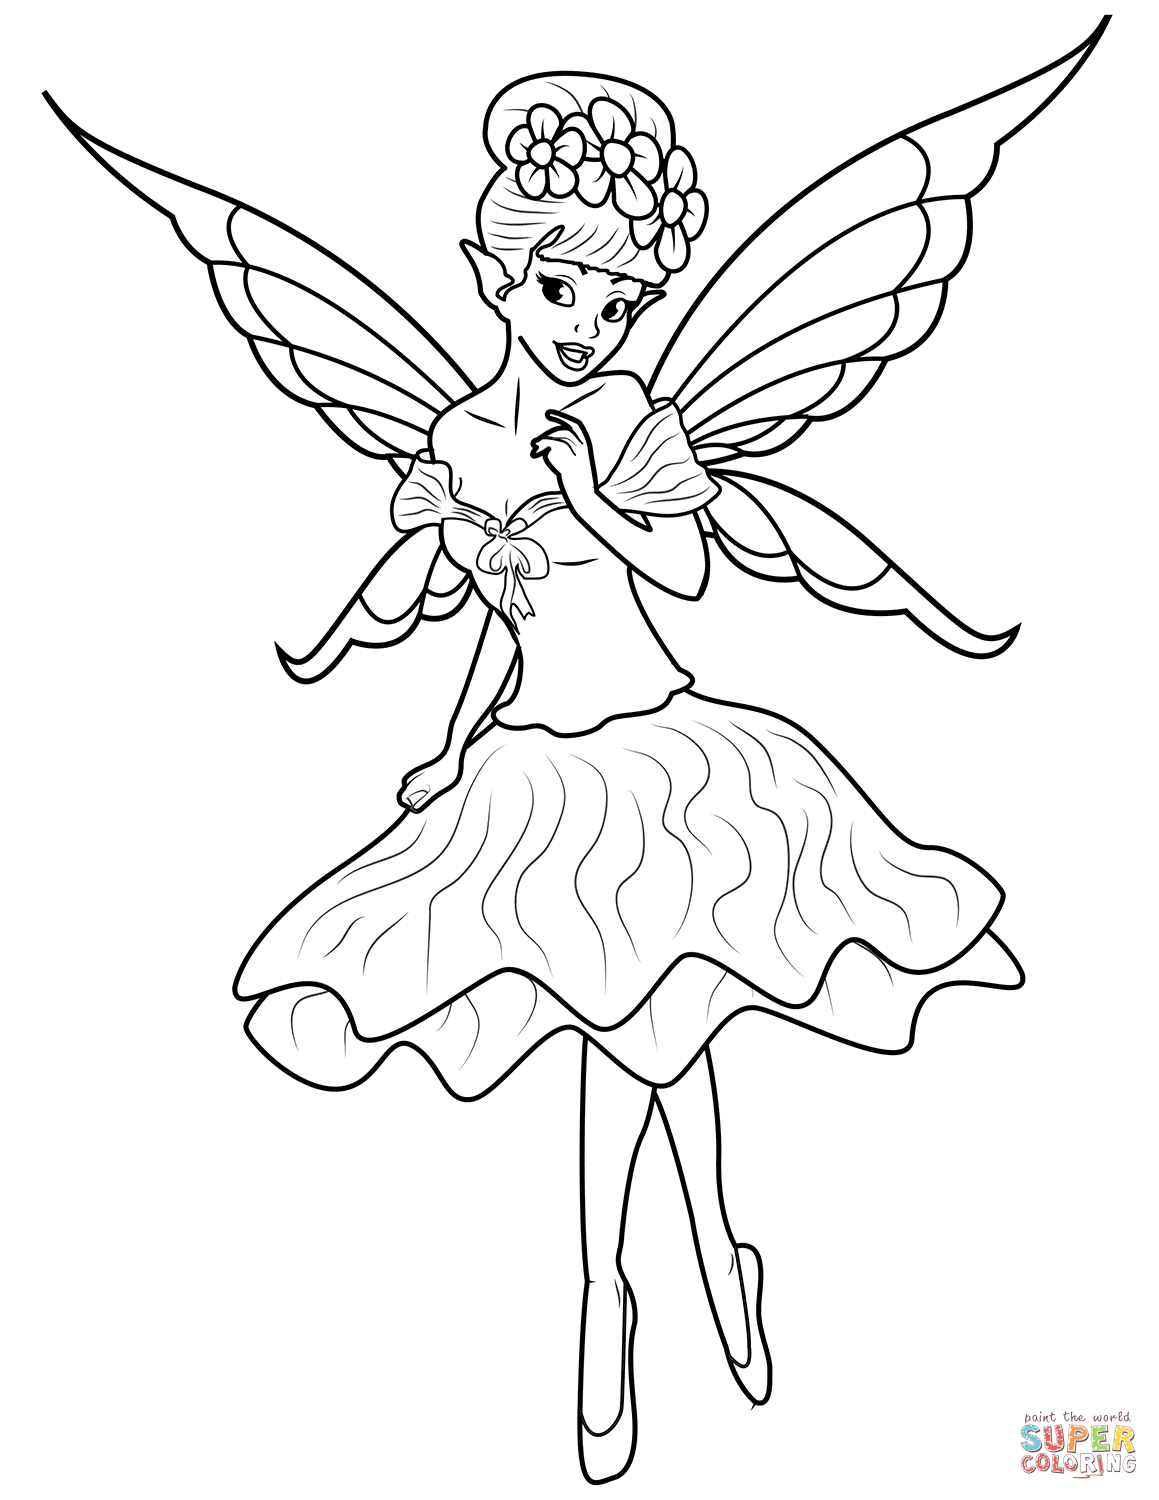 Fairy Coloring Pages | Free Coloring Pages - Free Printable Coloring Pages For Adults Dark Fairies